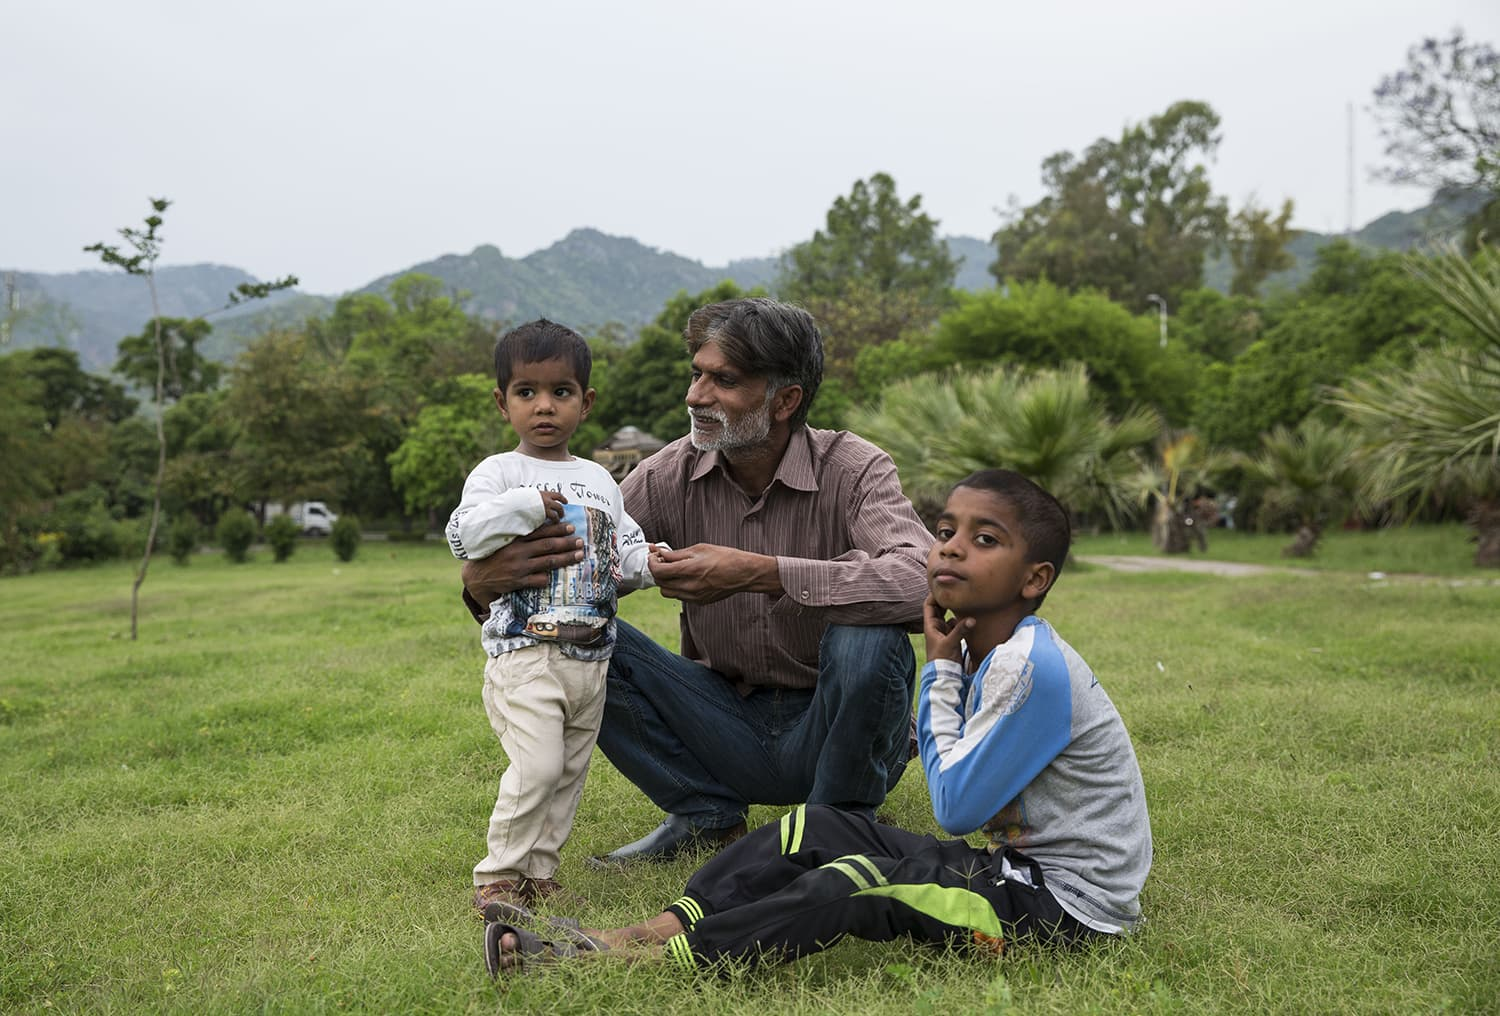 Arif Masih with his children Musa and Cynthia in the nearby park.